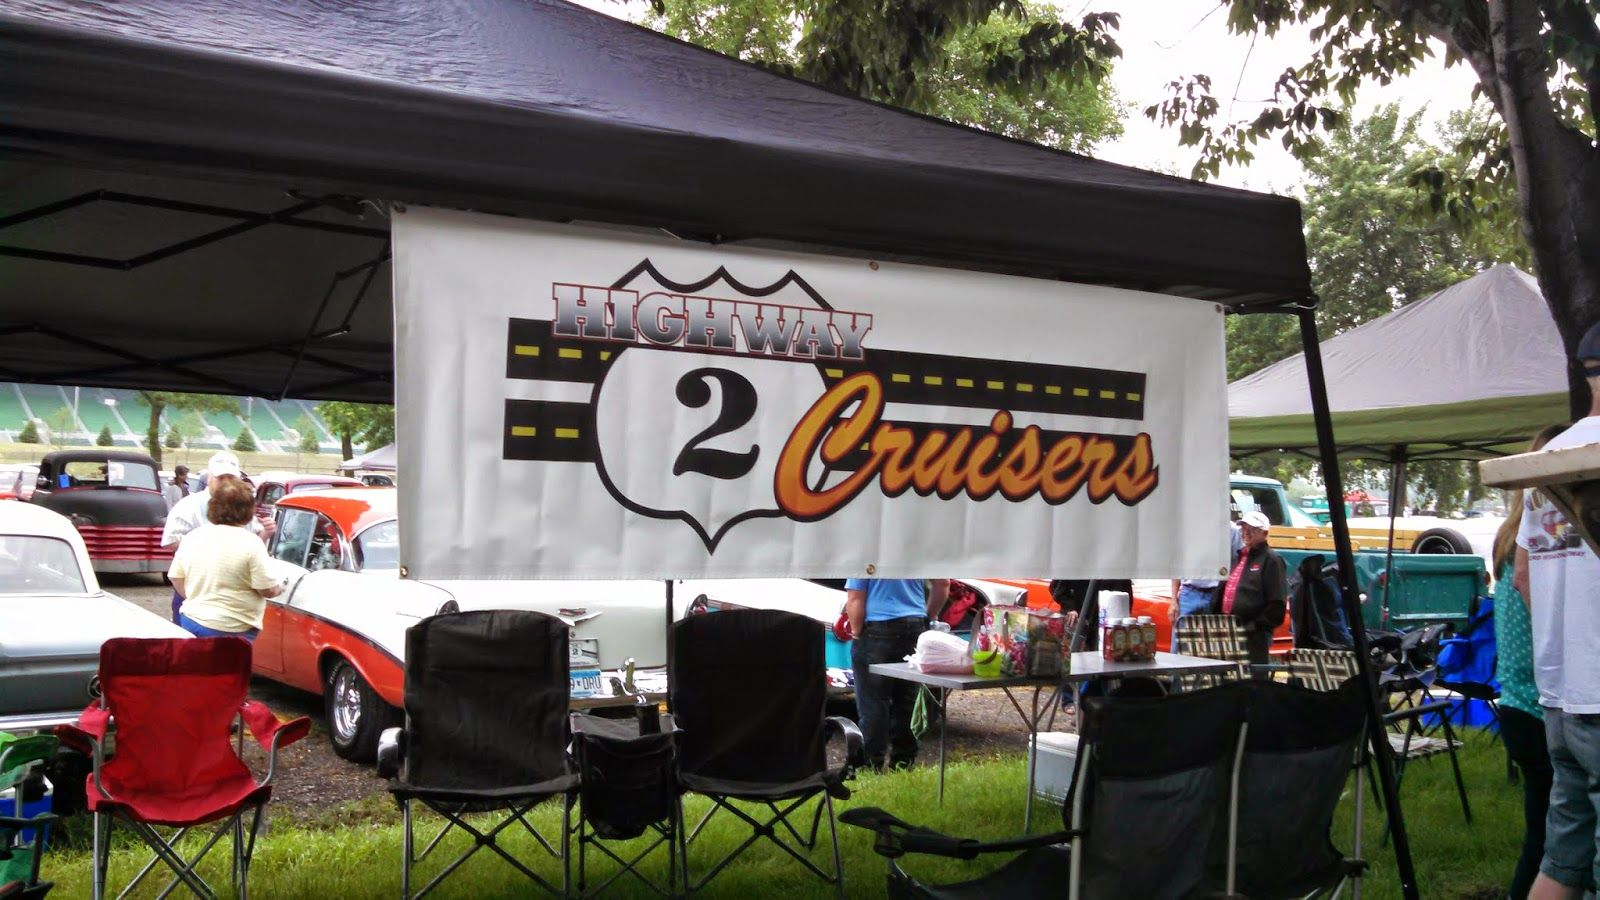 Hwy Cruisers Banner At The Back To The S Car Show Customer - Car show banners